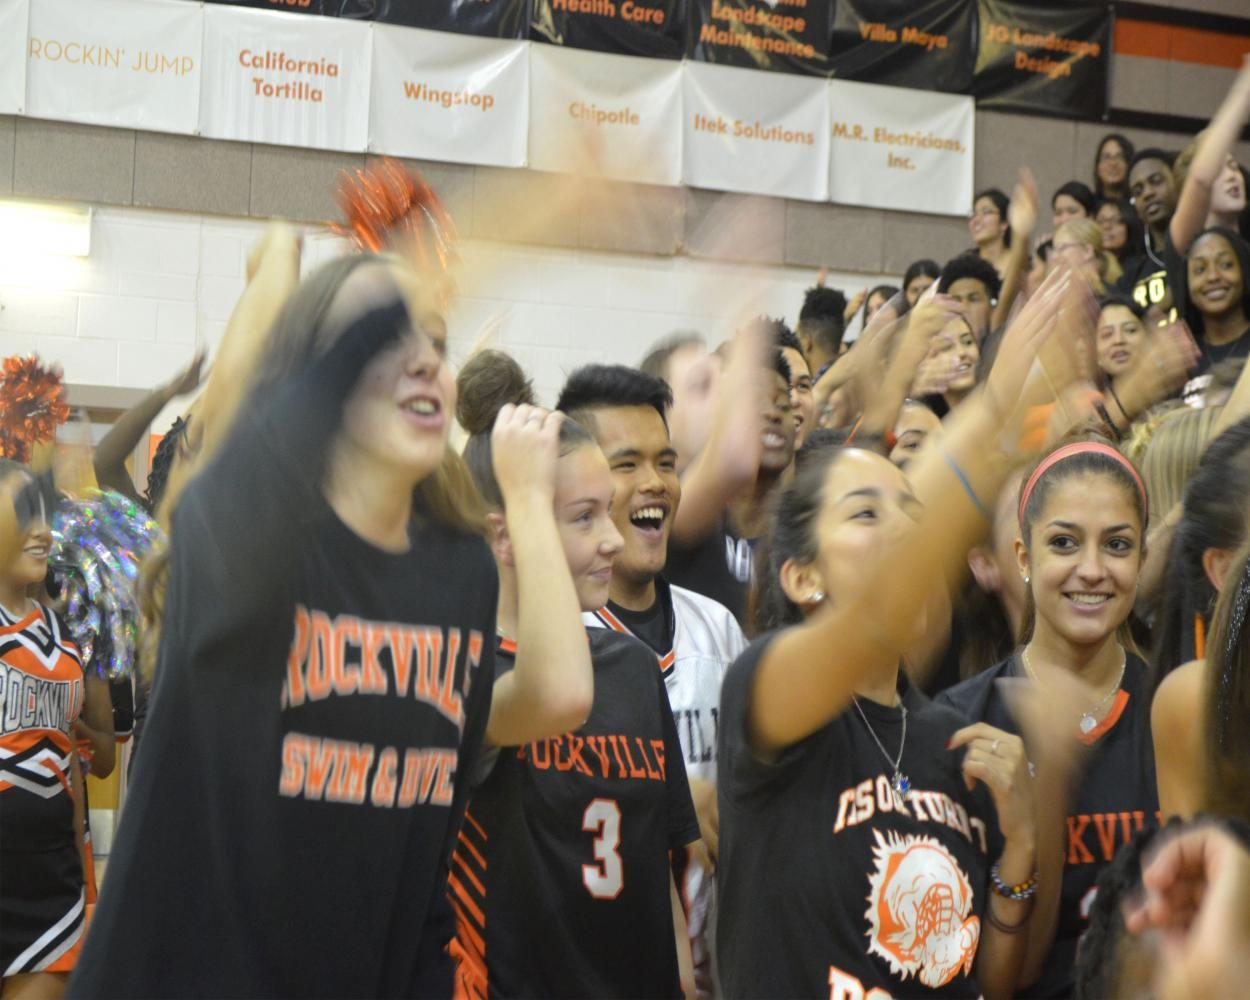 Students cheer enthusiastically as the pep rally activities unfold.